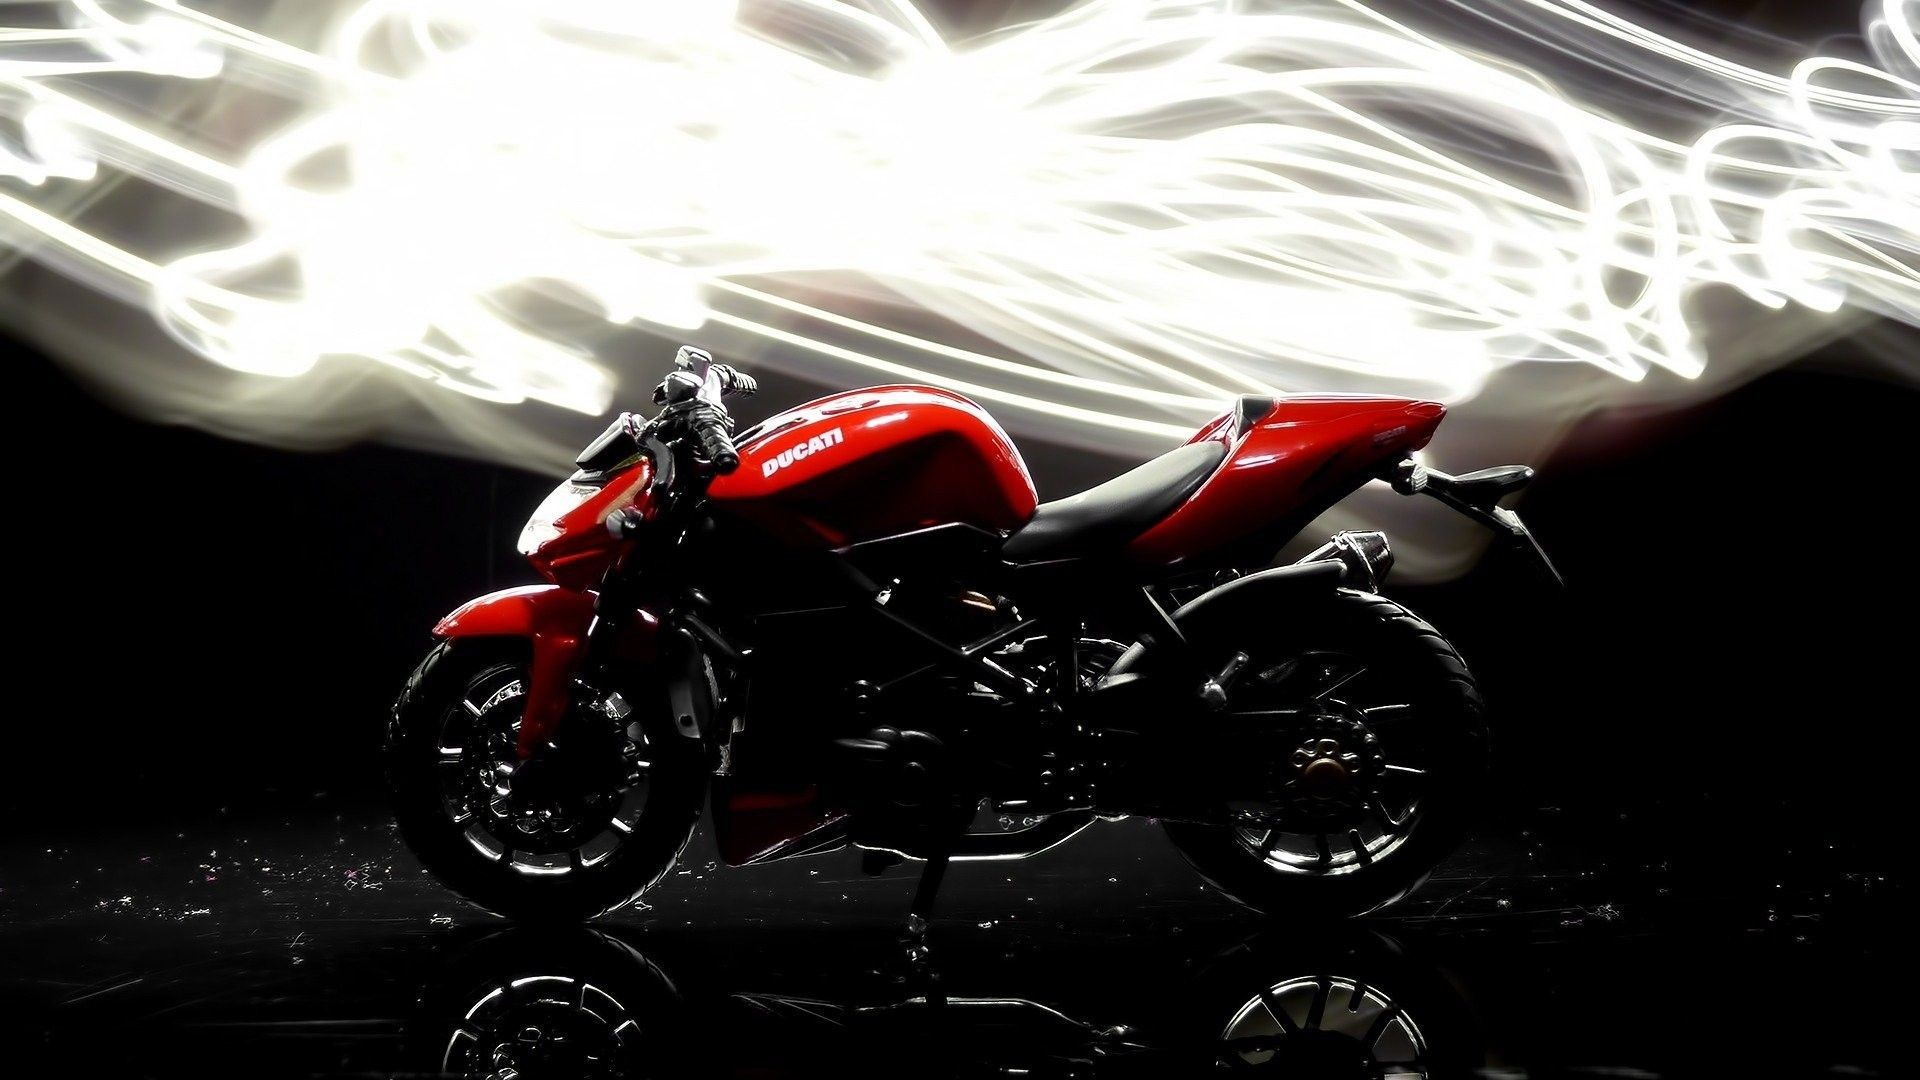 ducati bikes wallpaper | allwallpaper.in #3166 | pc | en